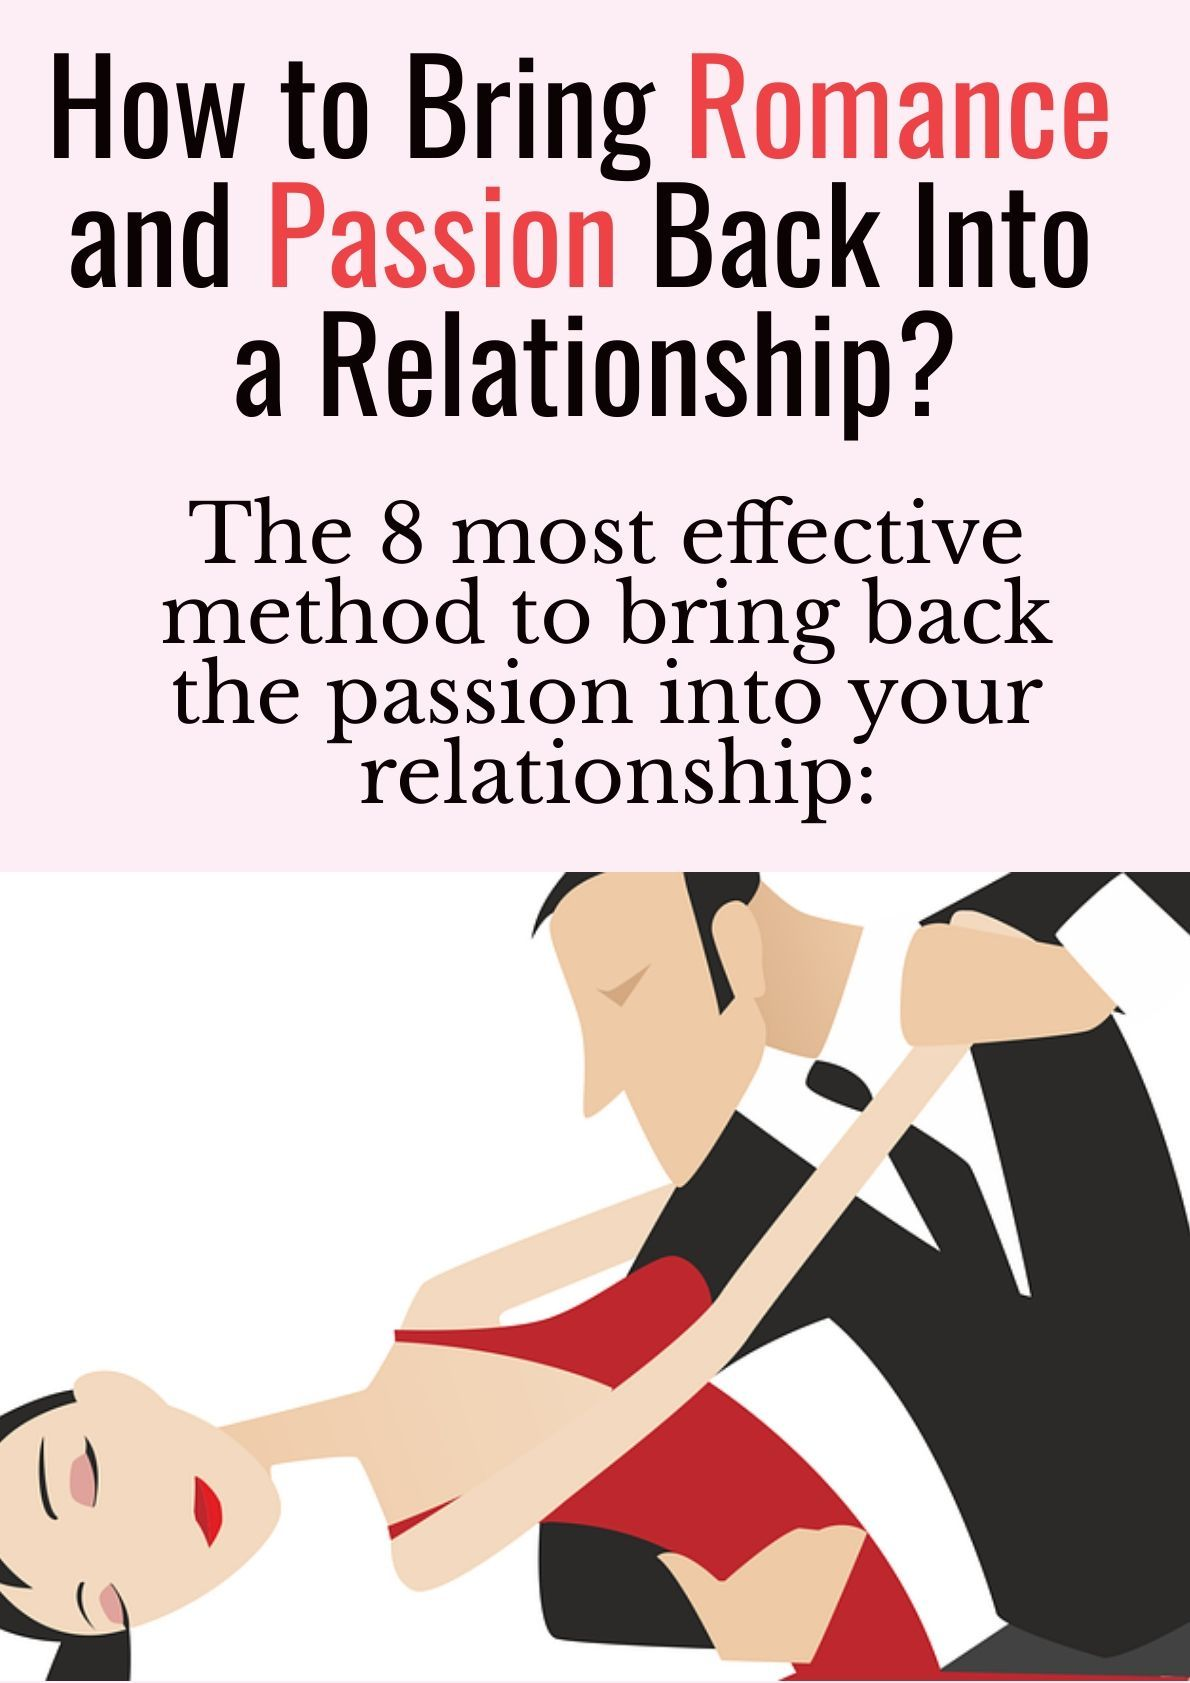 How To Get The Passion Back In My Relationship